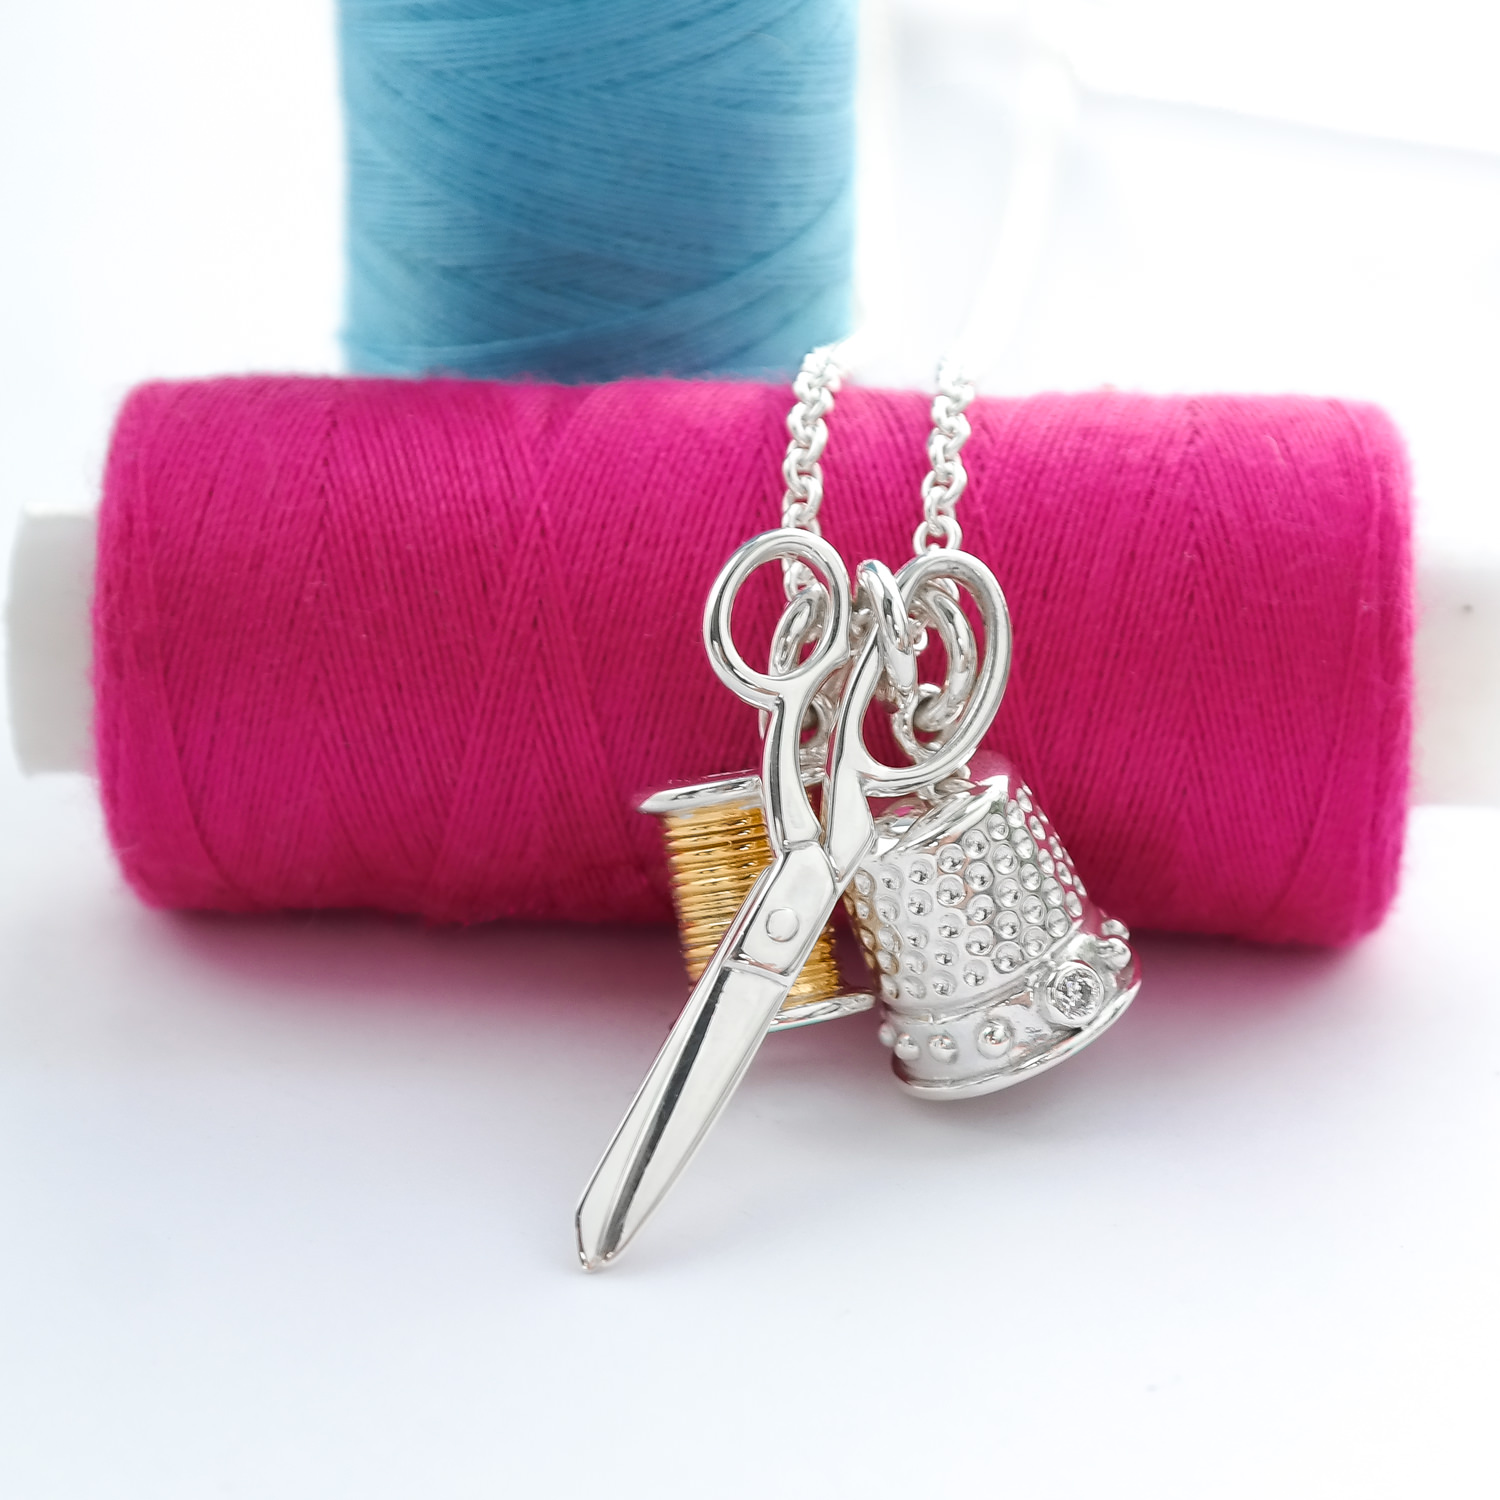 Sterling-silver-gold-diamond-sewing-scissors-cotton-reel-necklace.JPG